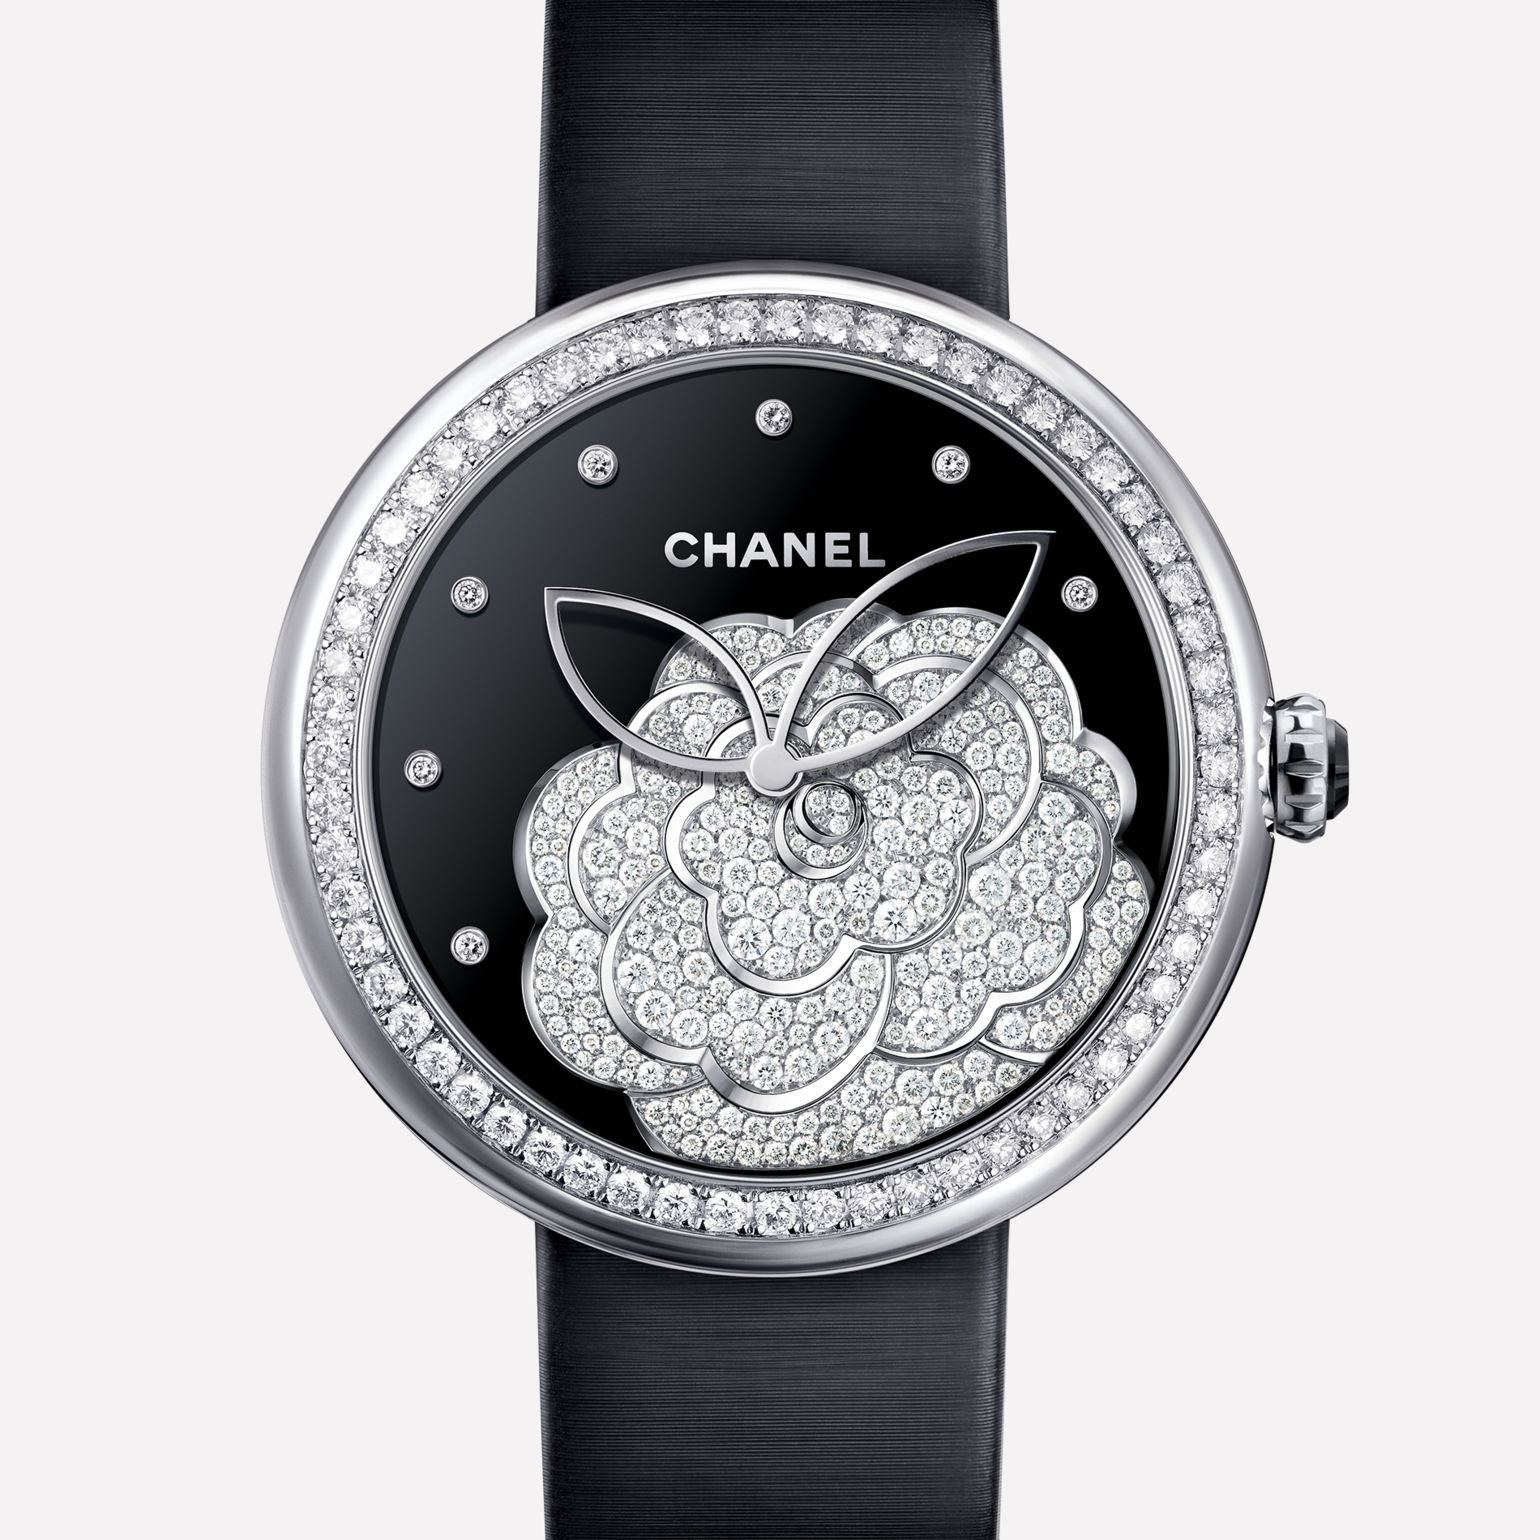 Mademoiselle Privé Watch Camellia set with diamonds, onyx dial, diamond indicators